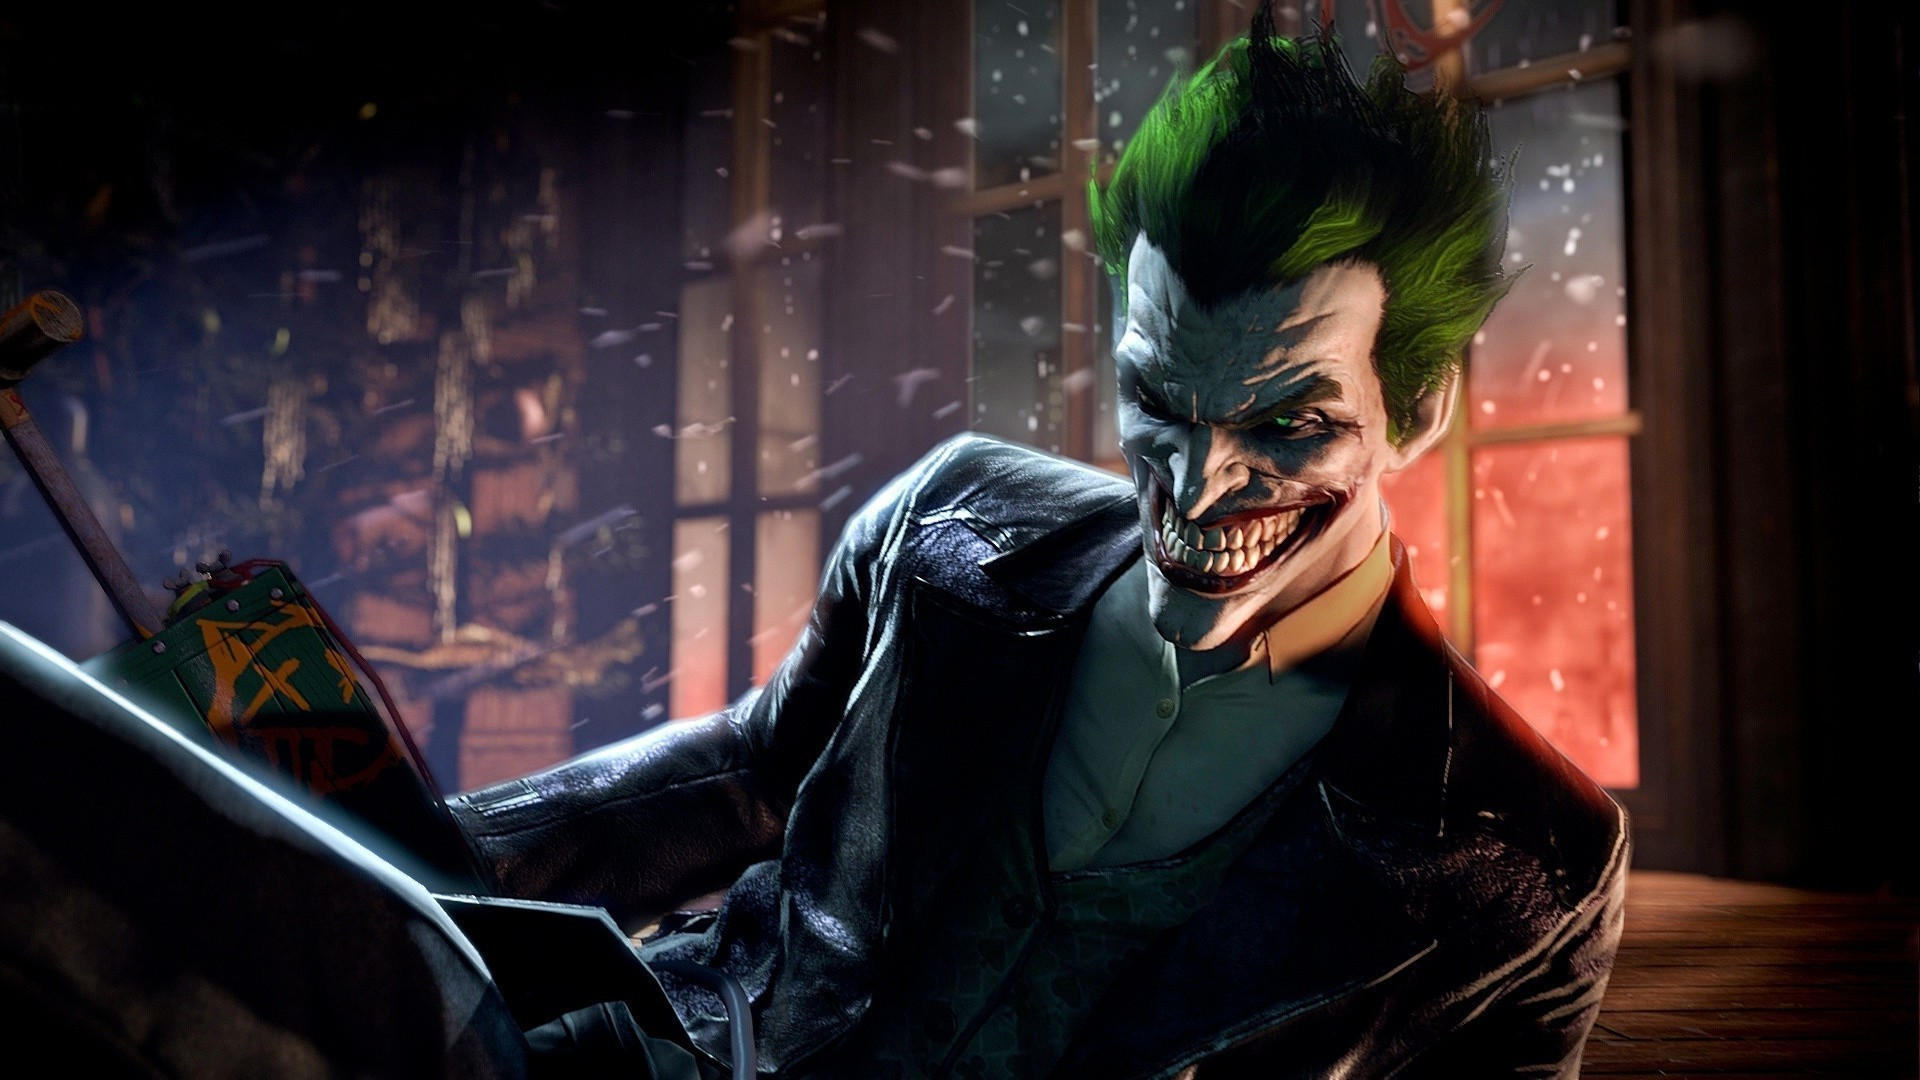 1920x1080 The Joker - Batman - Arkham Origins HD Wallpaper